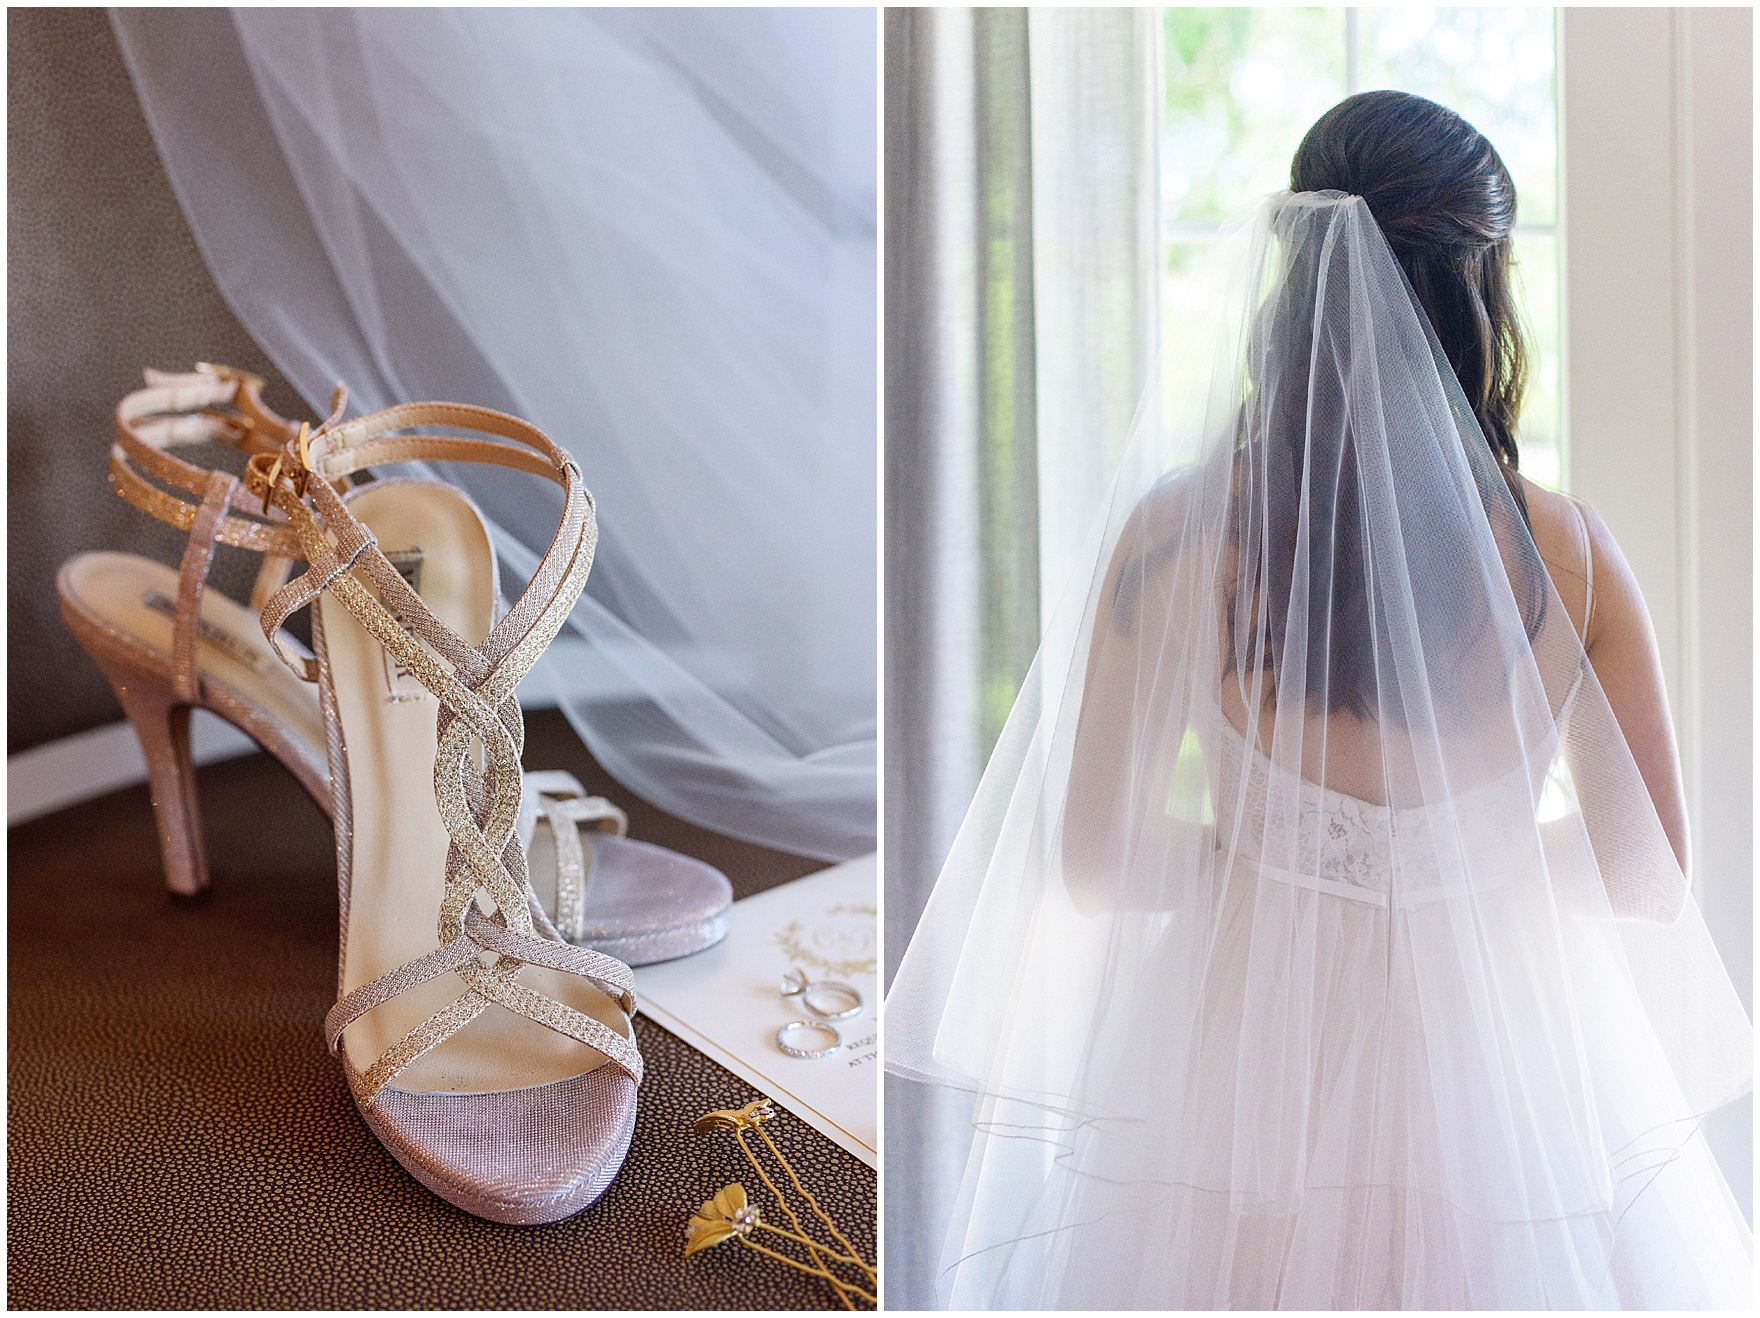 Details of the bride's veil and shoes for a Butterfield Country Club wedding.